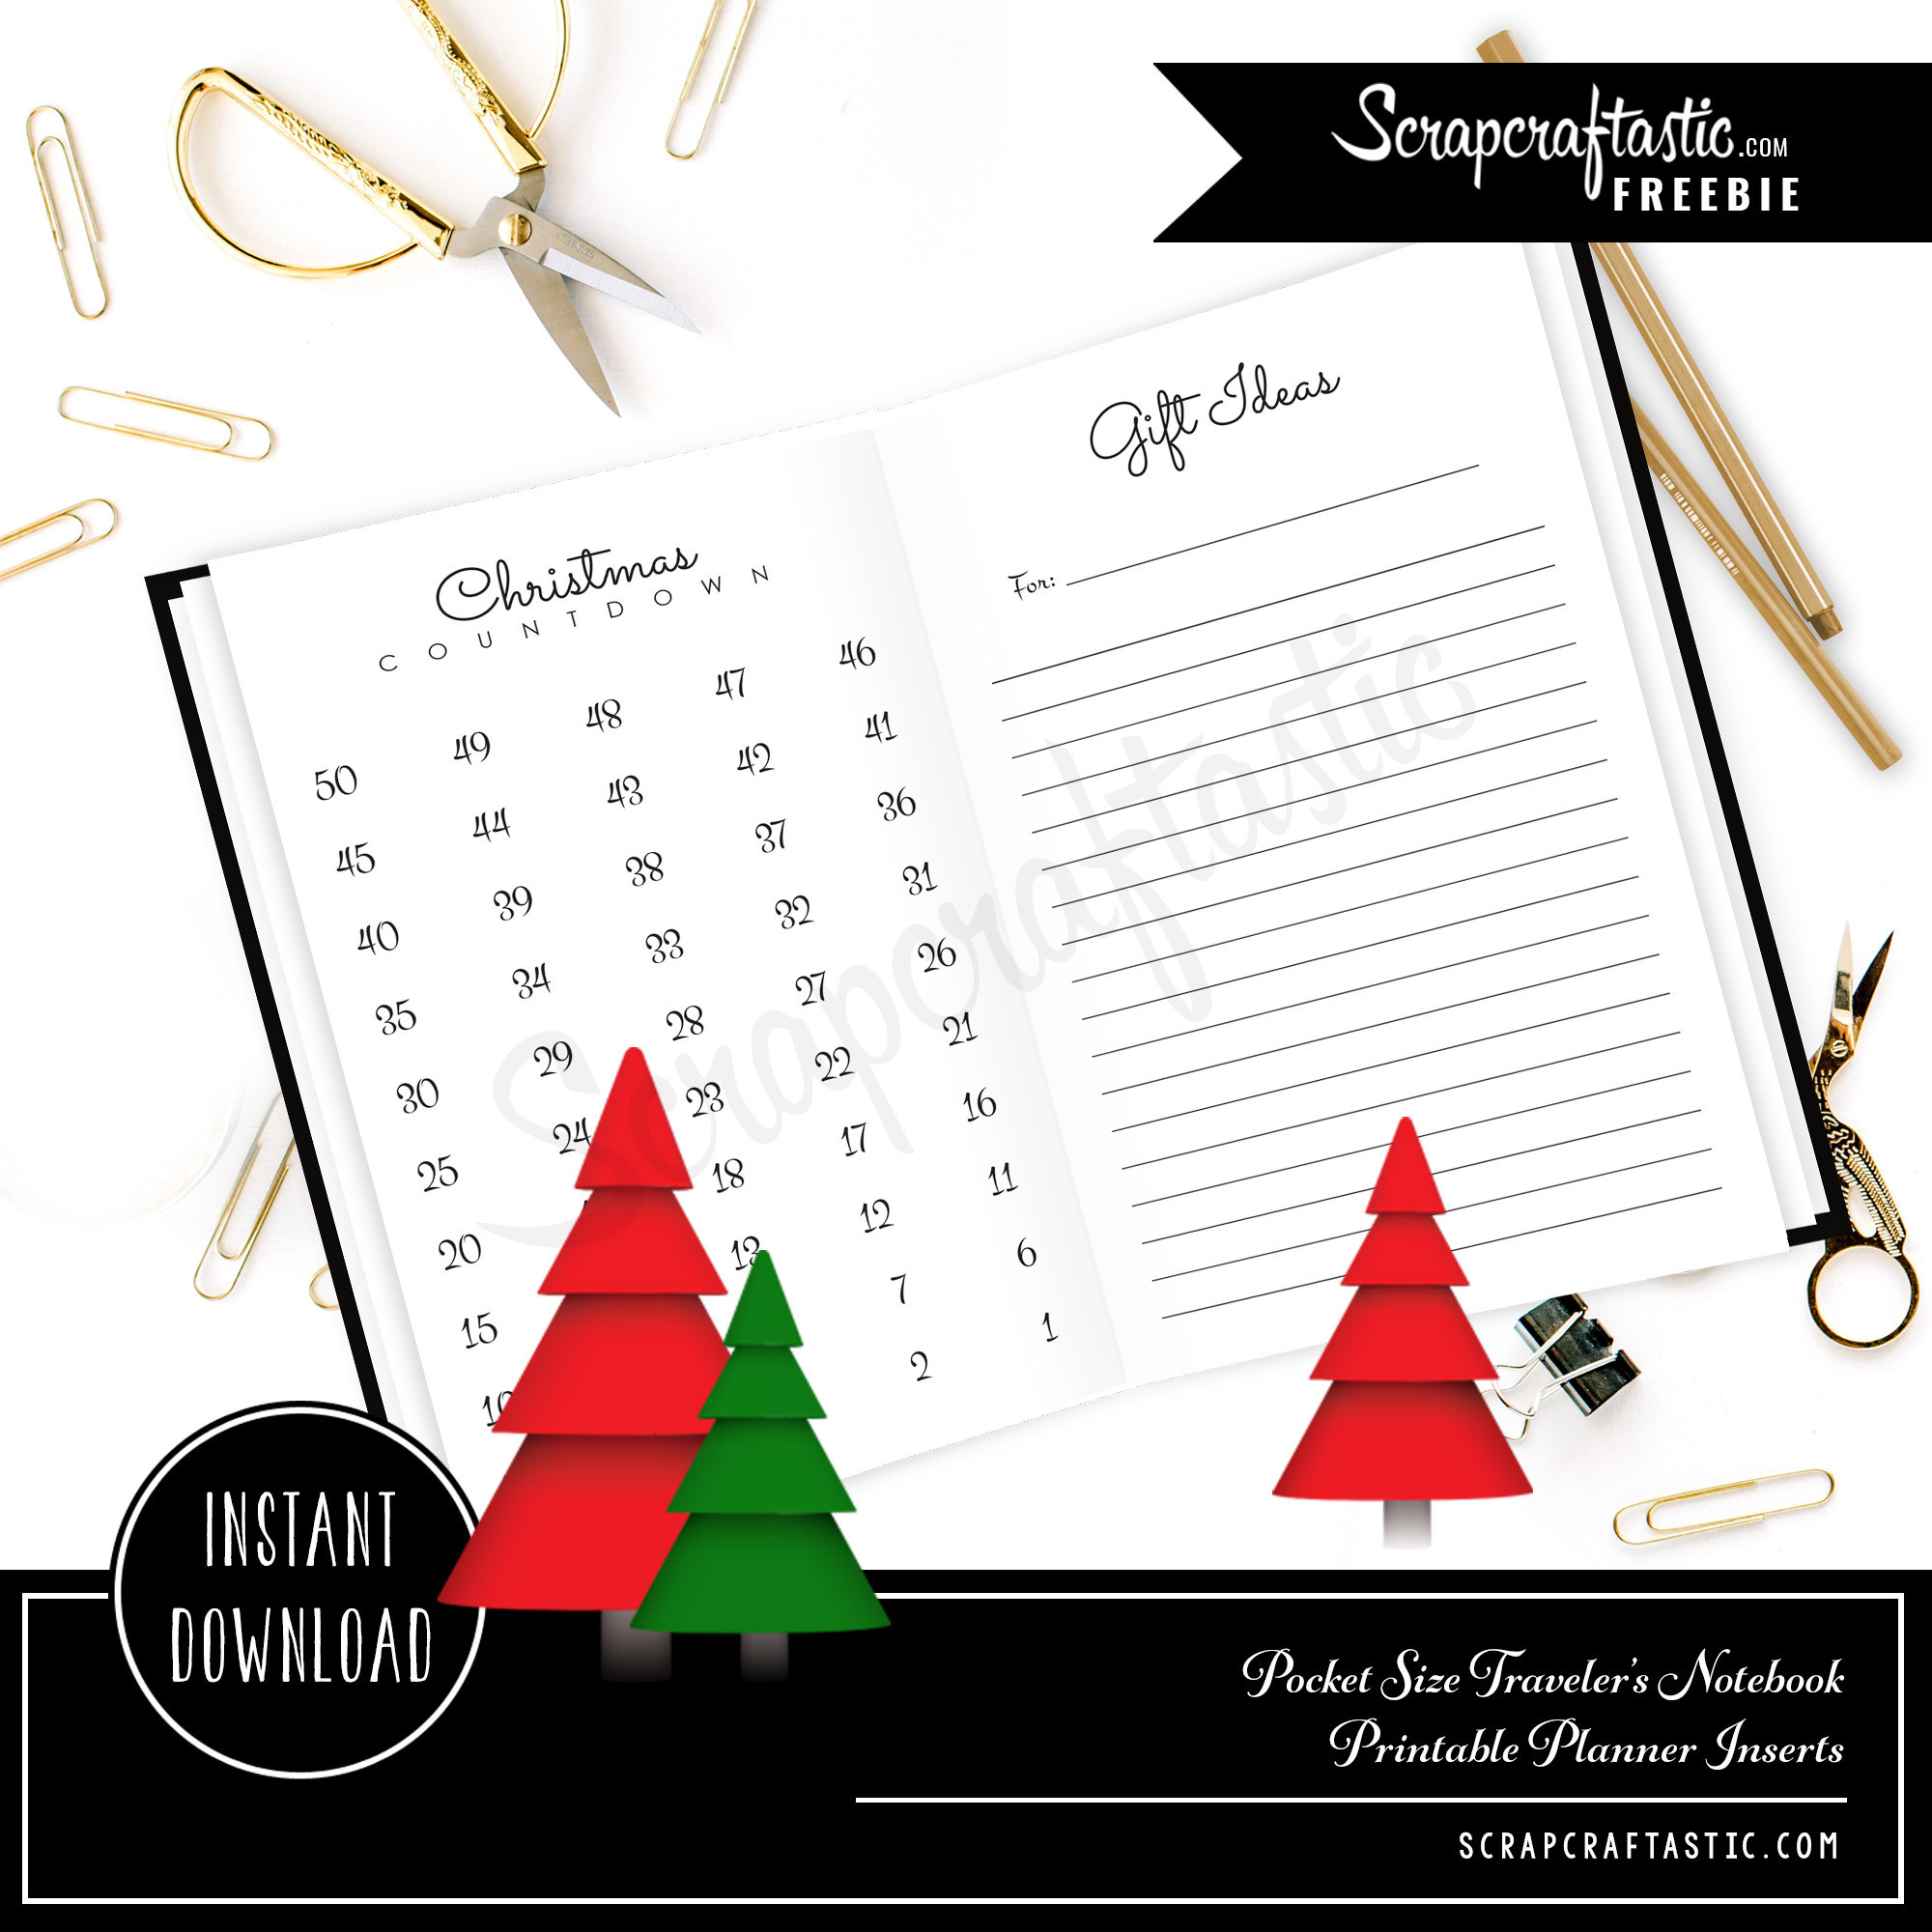 Christmas Countdown and Gift Ideas Pocket Size Traveler's Notebook Inserts 06002